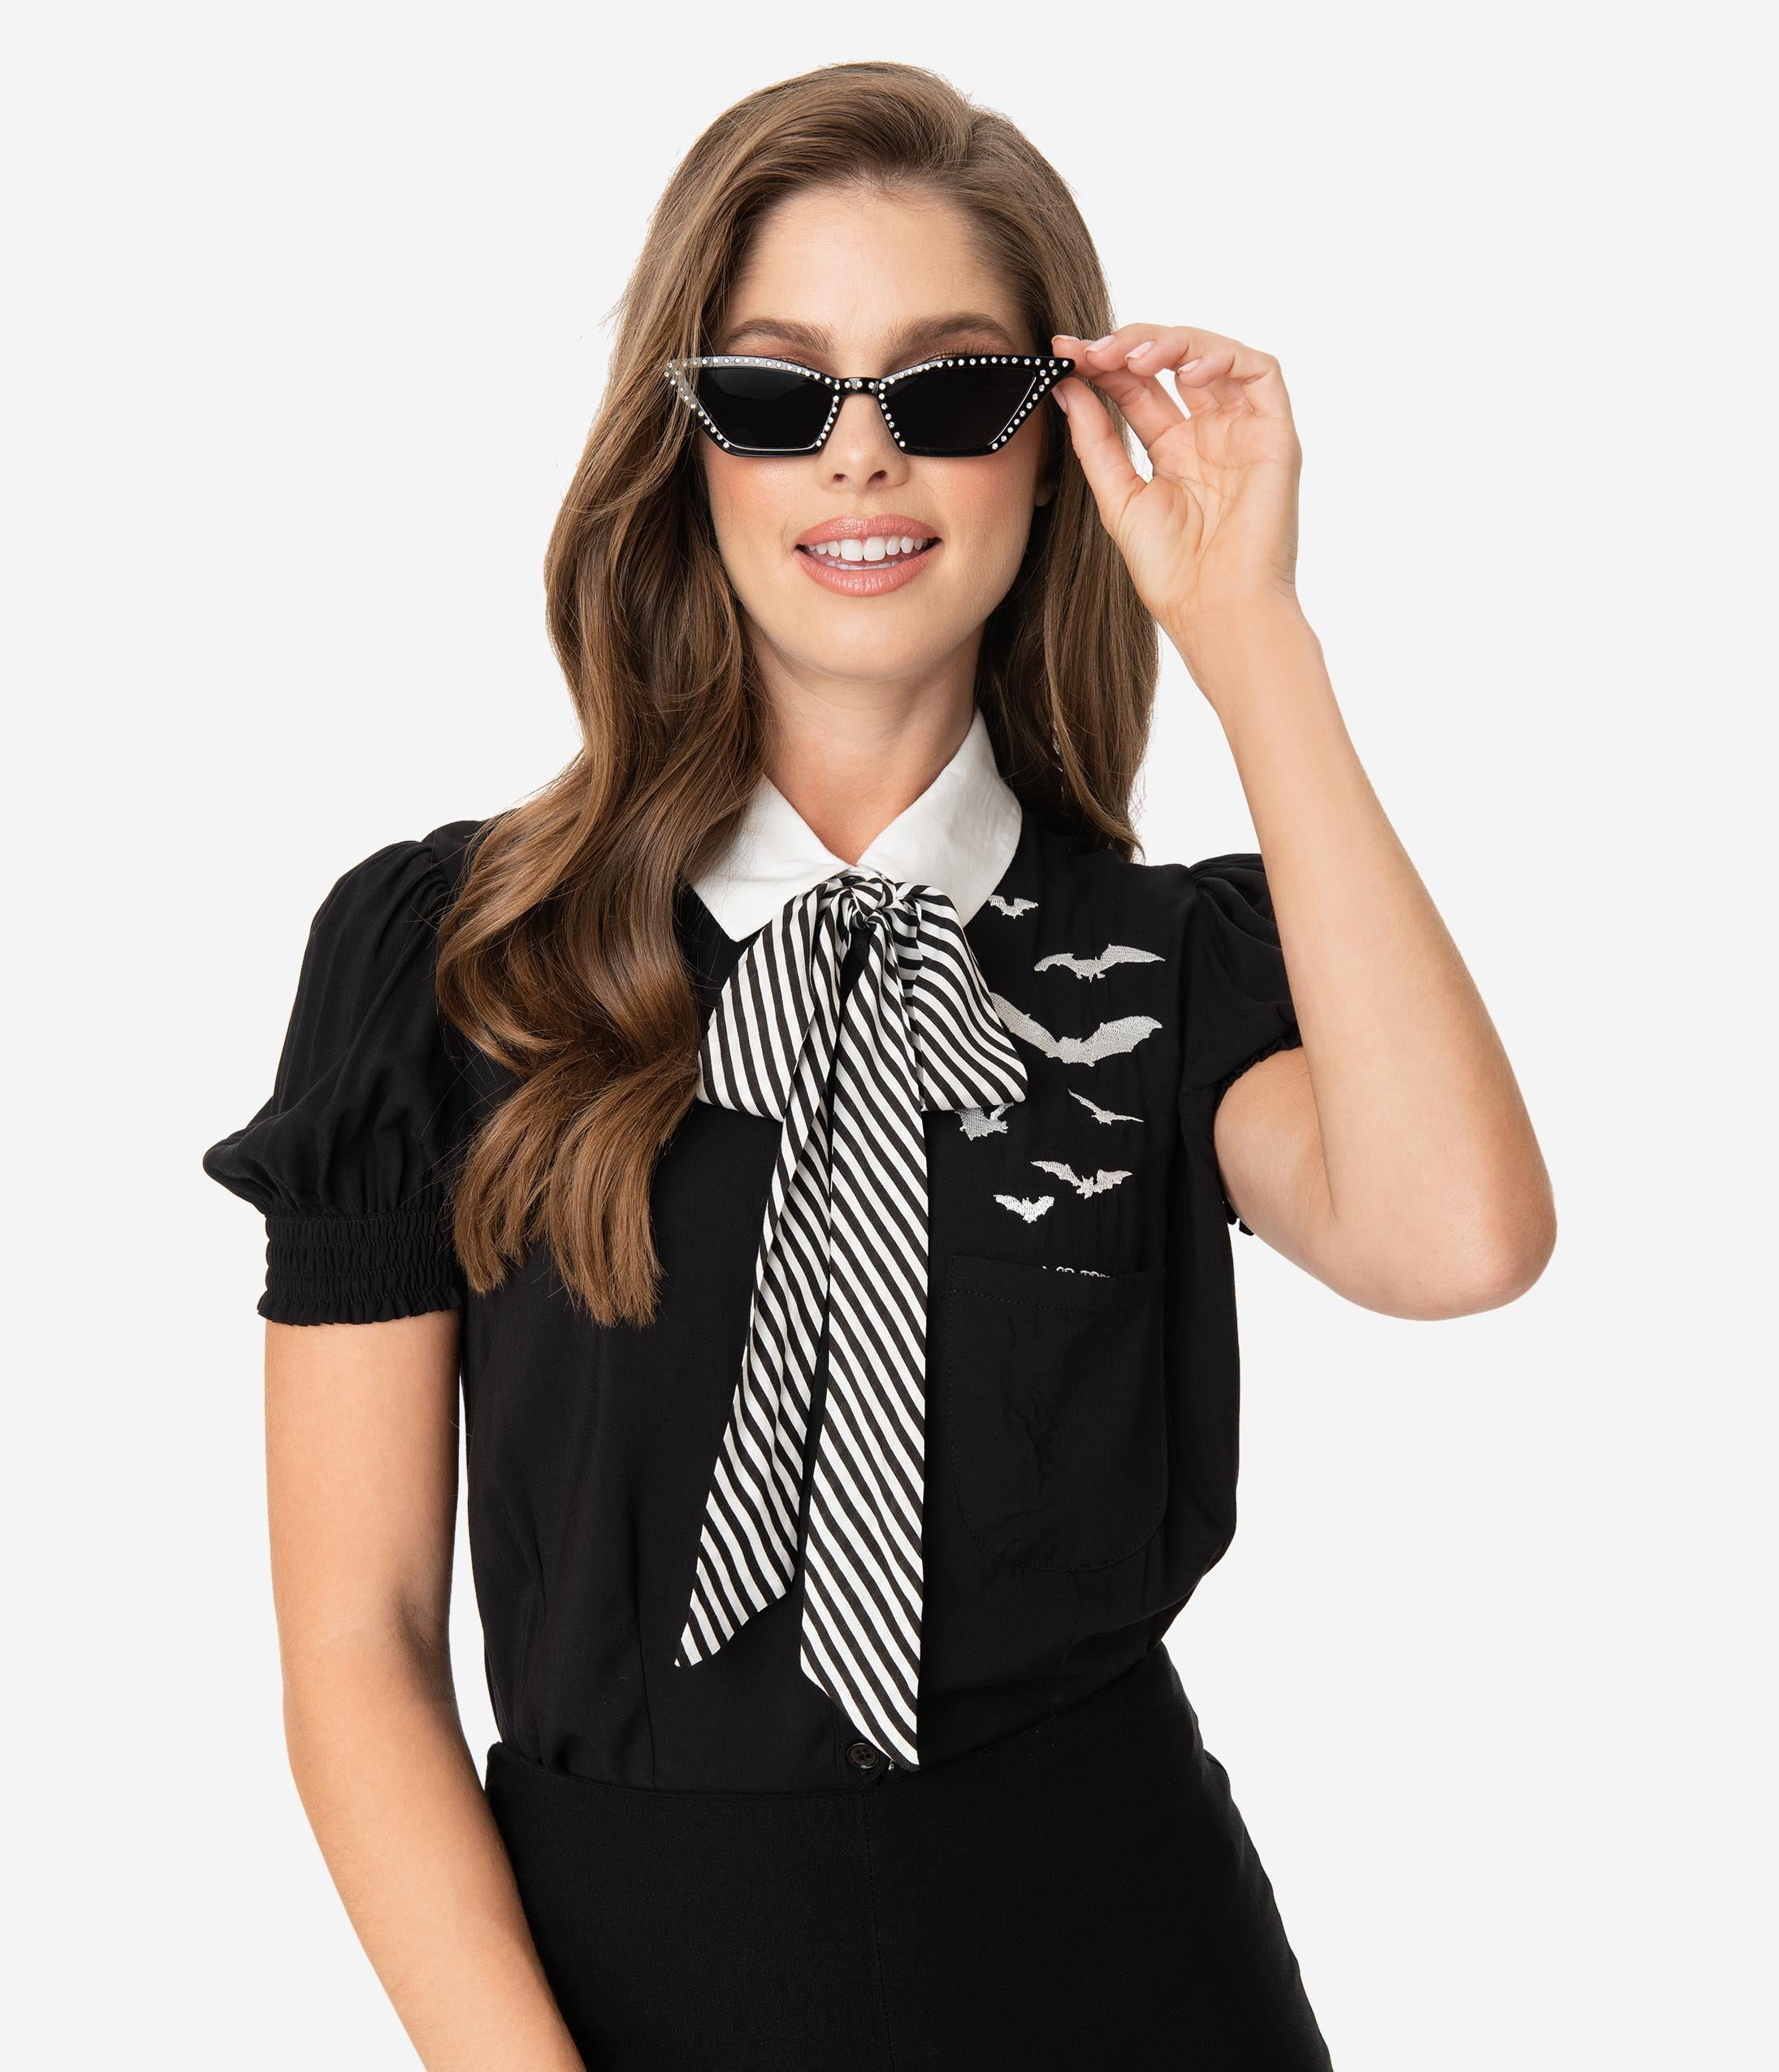 Easy Retro Halloween Costumes – Last Minute Ideas Hell Bunny 1950S Style Black  White Stripe Bow Tie Trixie Blouse $58.00 AT vintagedancer.com